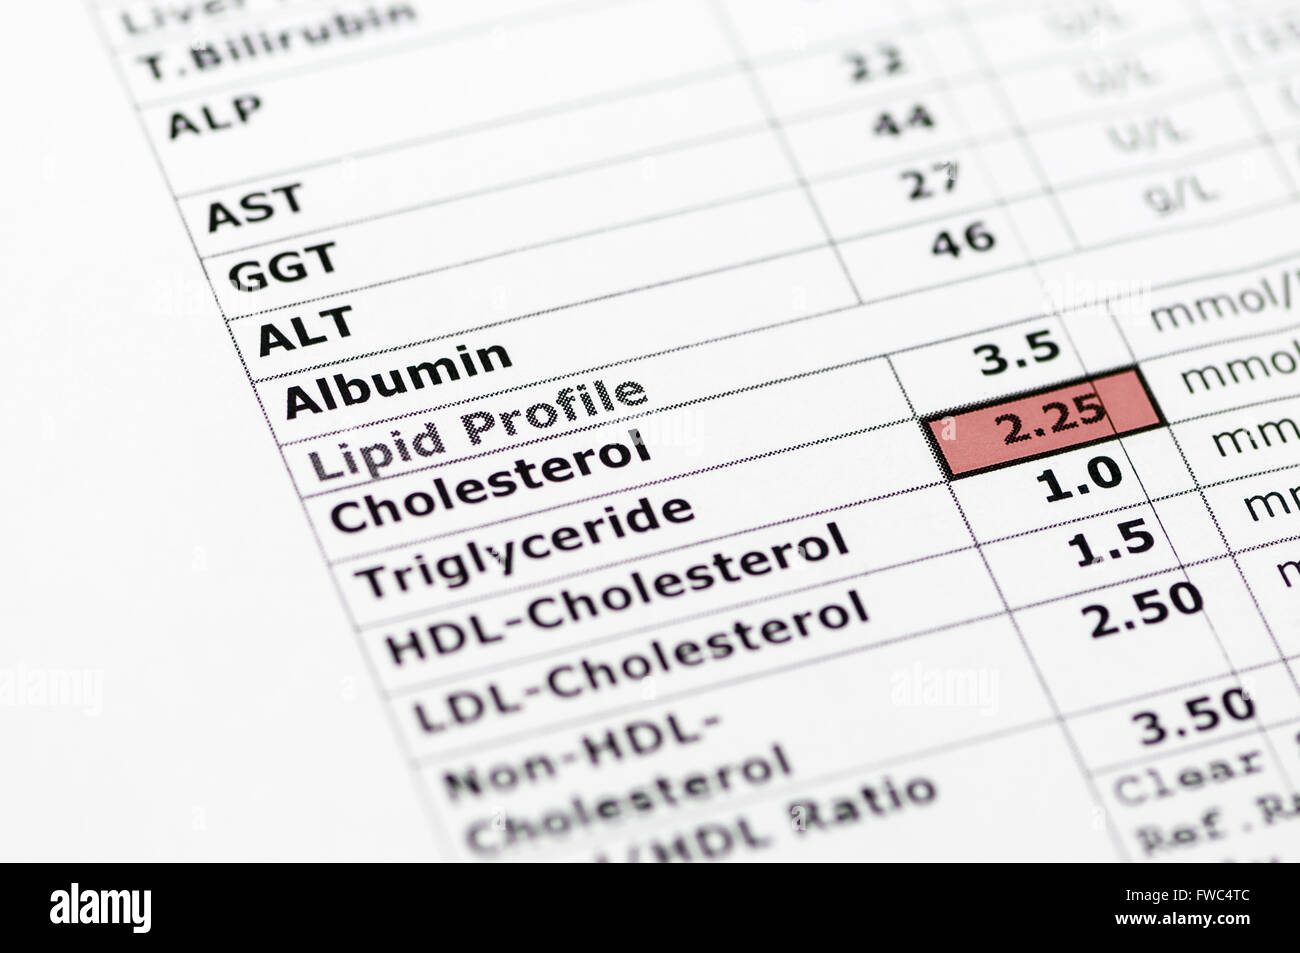 Blood Chemistry Report Showing Normal Liver Function Tests And A Stock Photo